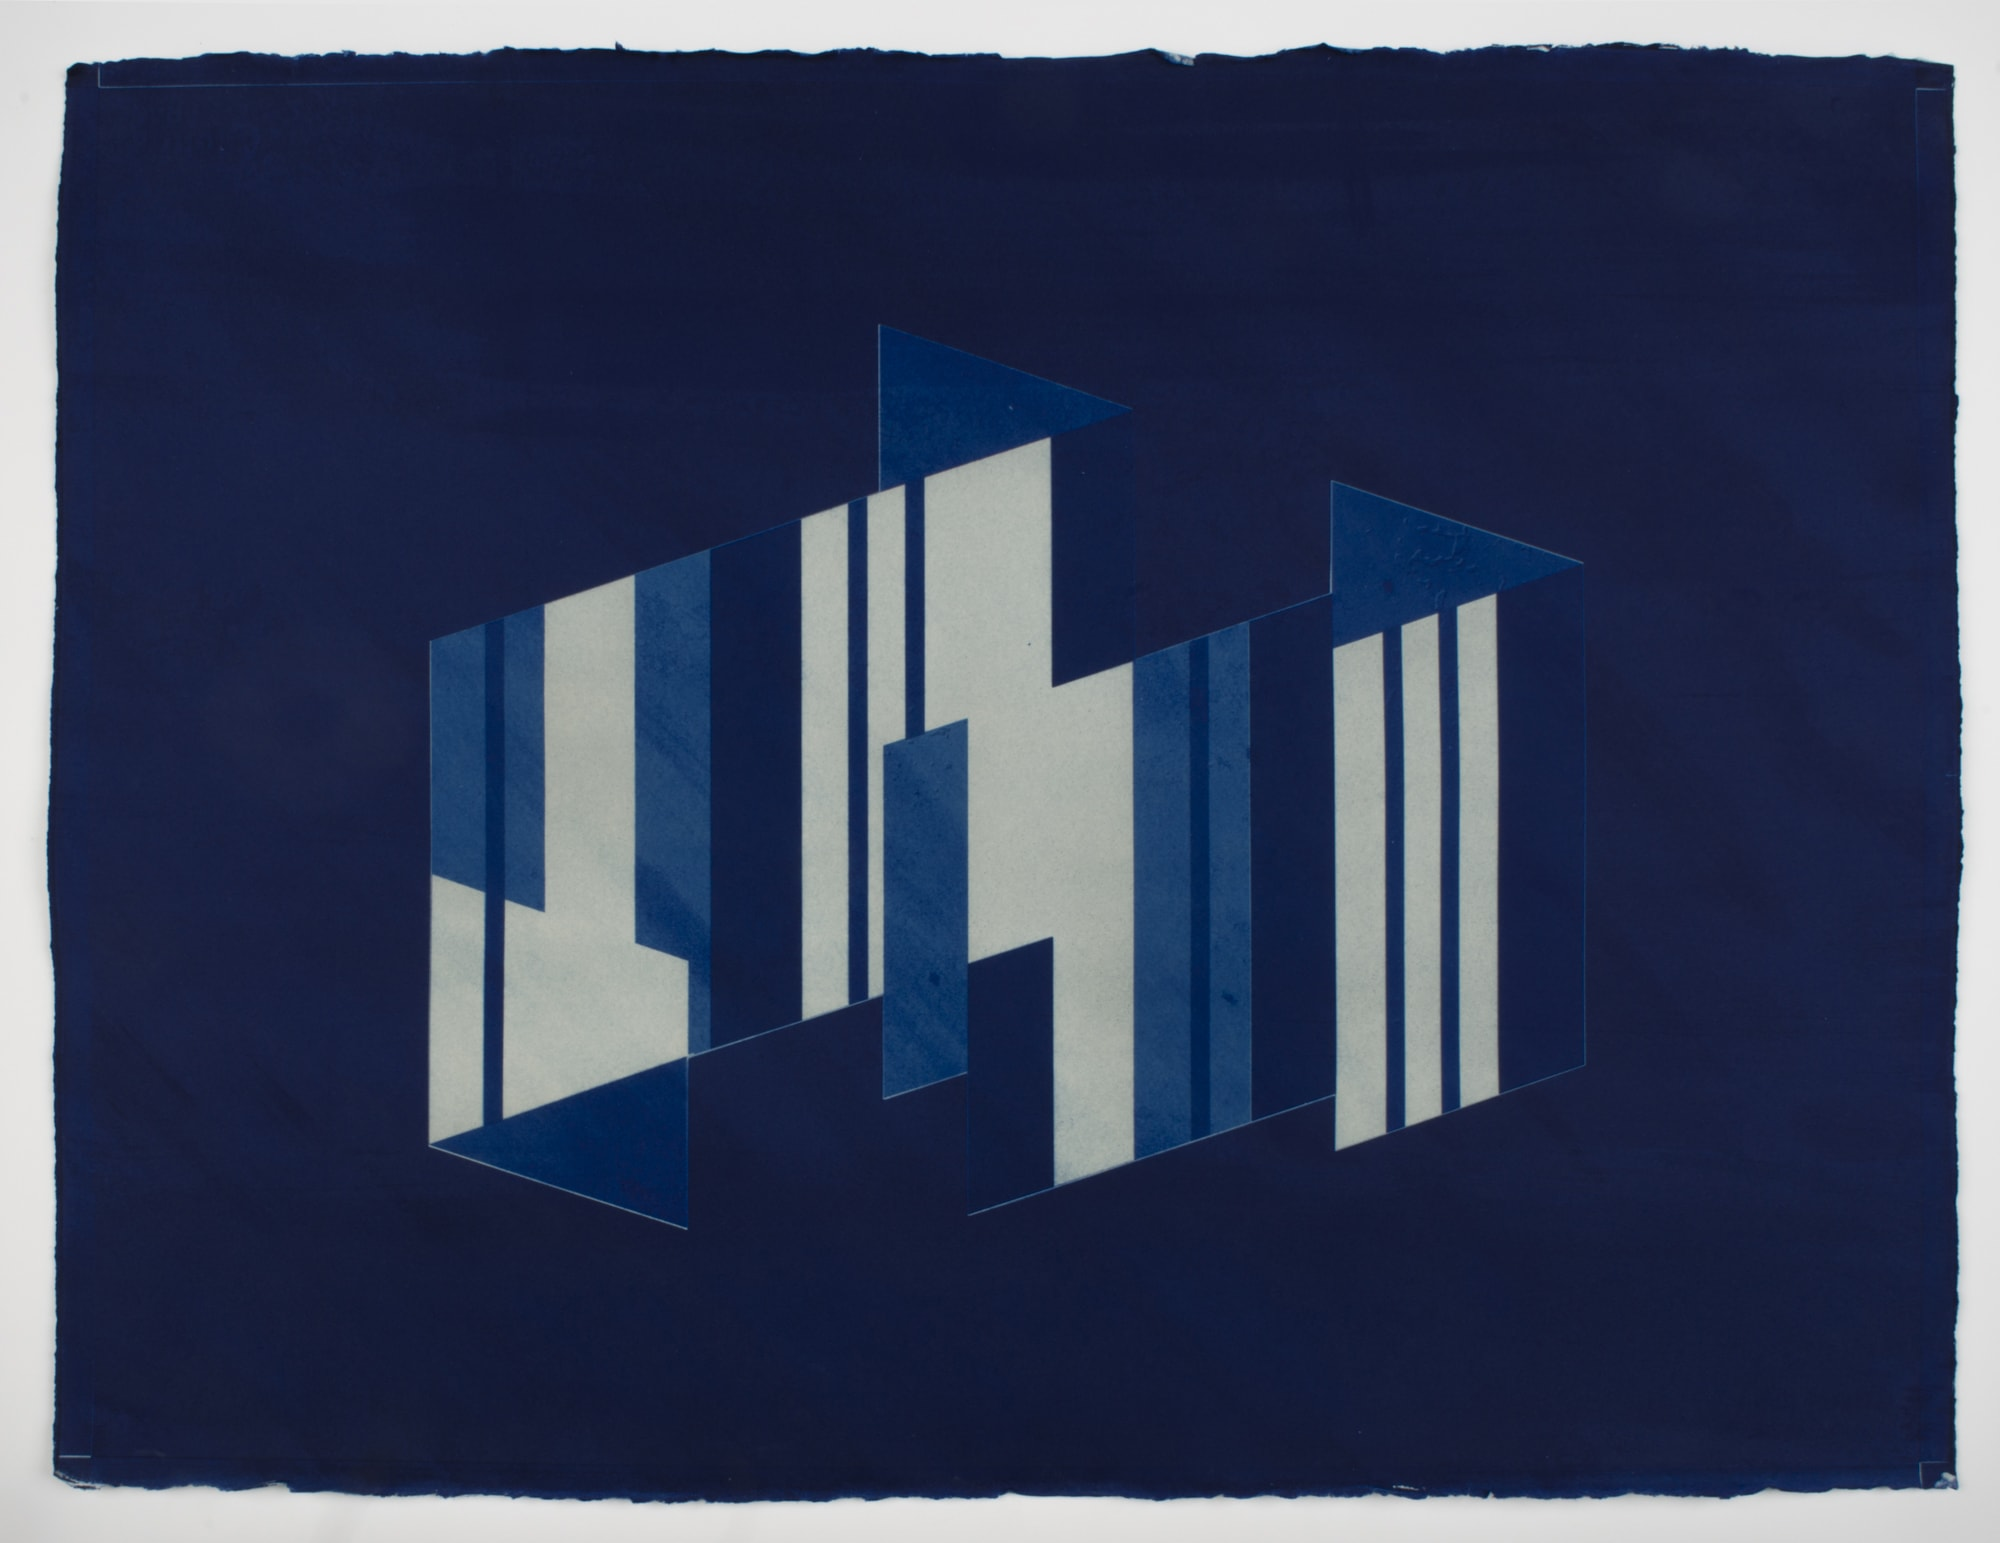 "<span class=""link fancybox-details-link""><a href=""/content/feature/165/artworks688/"">View Detail Page</a></span><div class=""medium"">Cyanotype on cotton rag paper<br /> Framed<br /> Unique</div> <div class=""dimensions"">76.2 x 61 cm<br /> 30 x 24 in</div>"